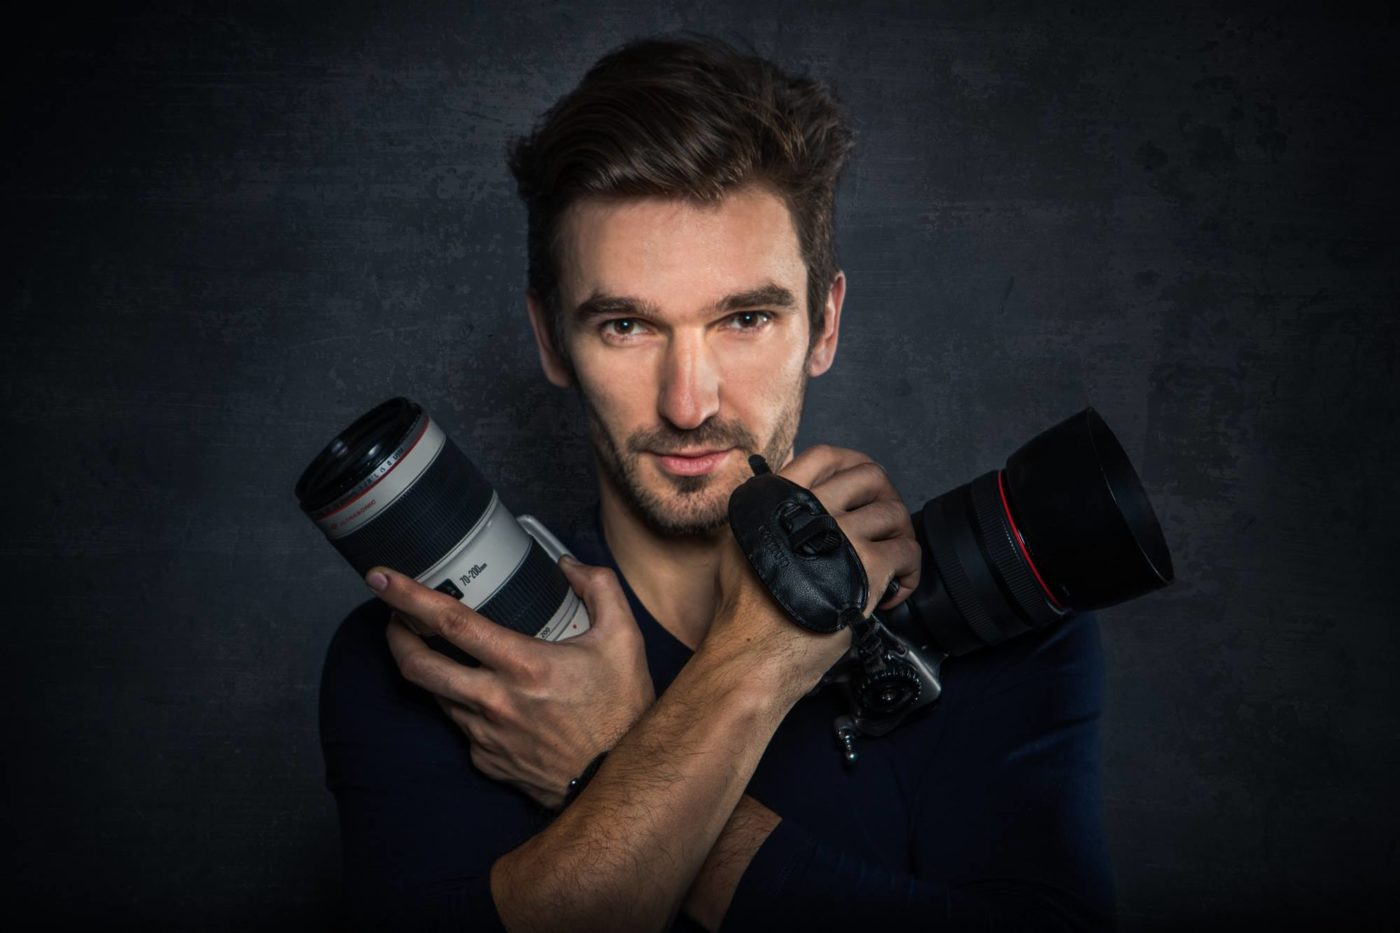 Danylo-Bobyk-Photography-Equipment